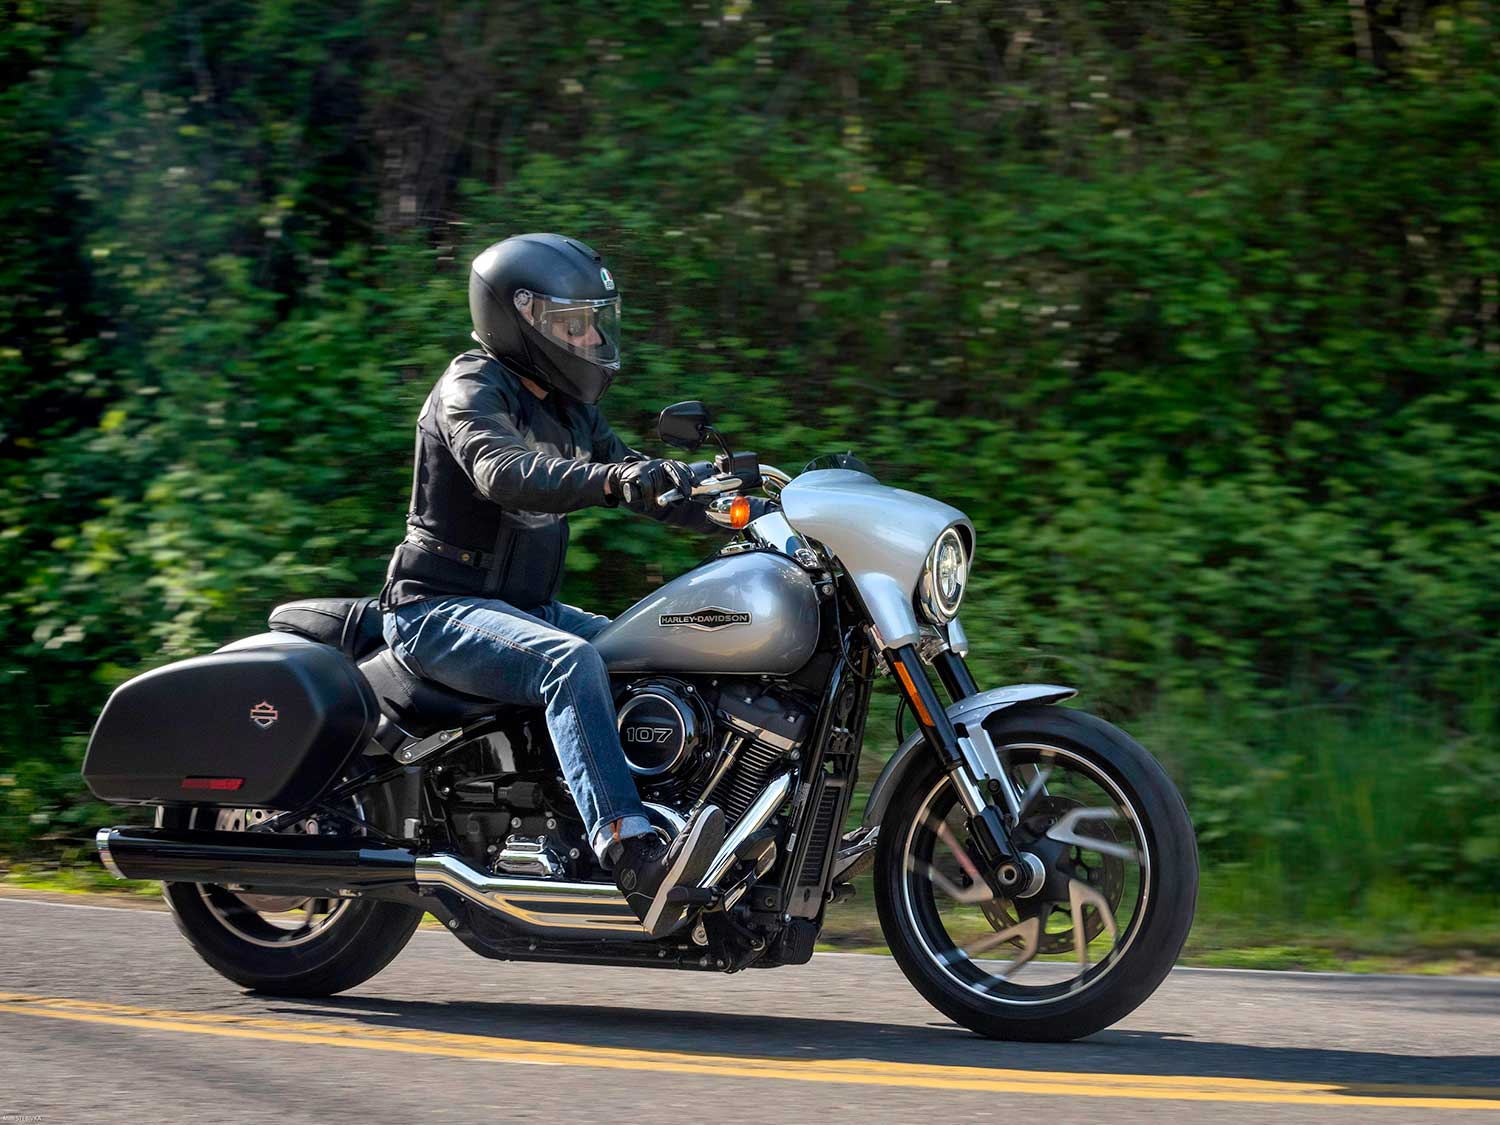 1,000 Miles On A 2019 Harley-Davidson Sport Glide—And We're Not Done